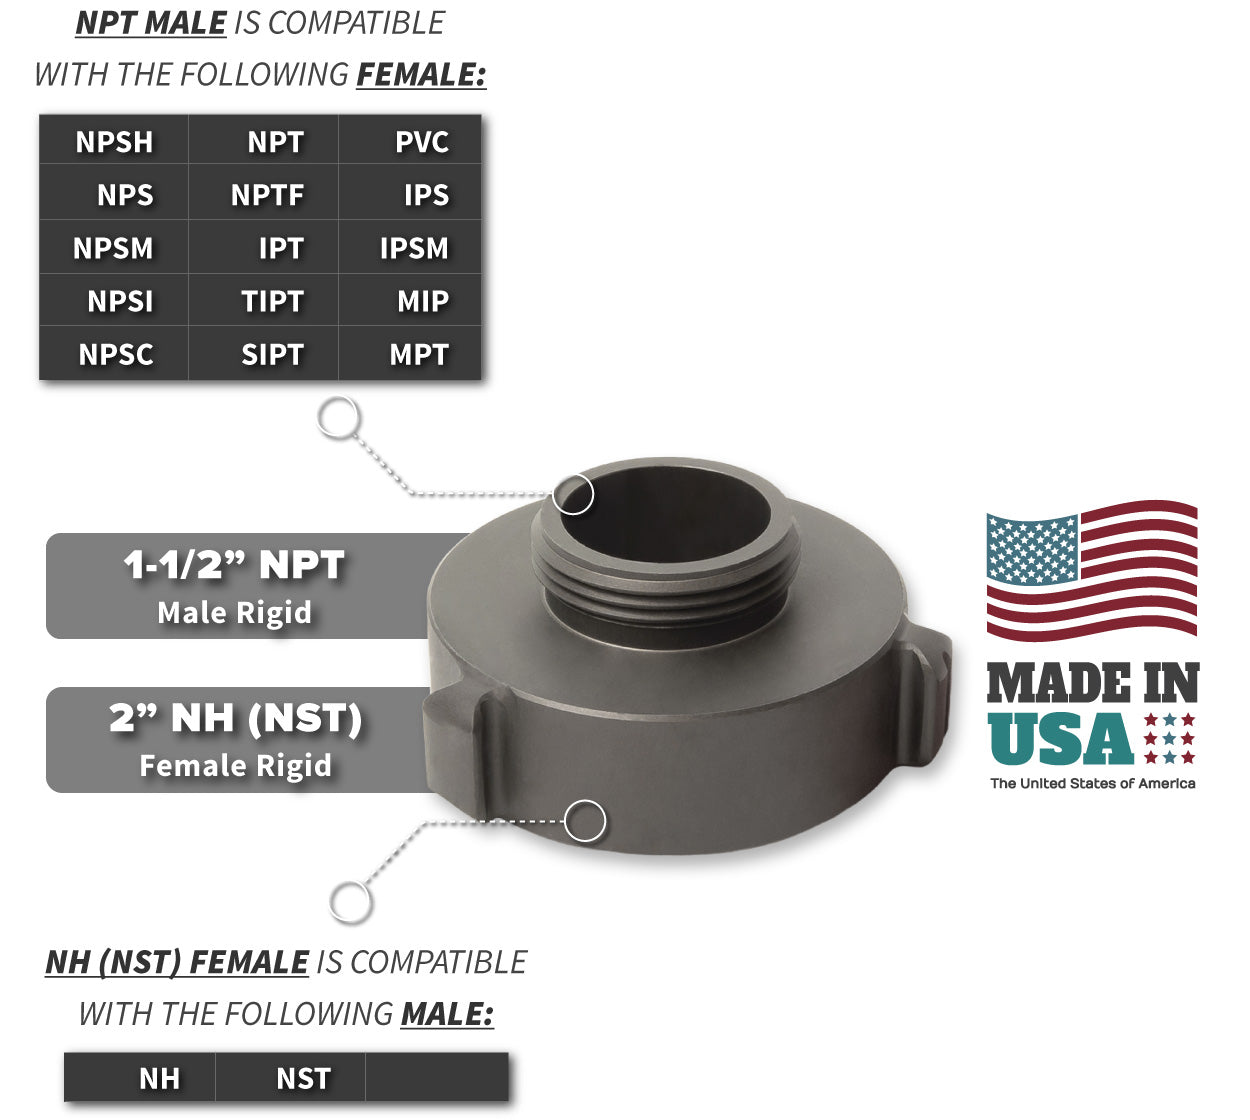 2 Inch NH-NST Female x 1.5 Inch NPT Male Compatibility Thread Chart